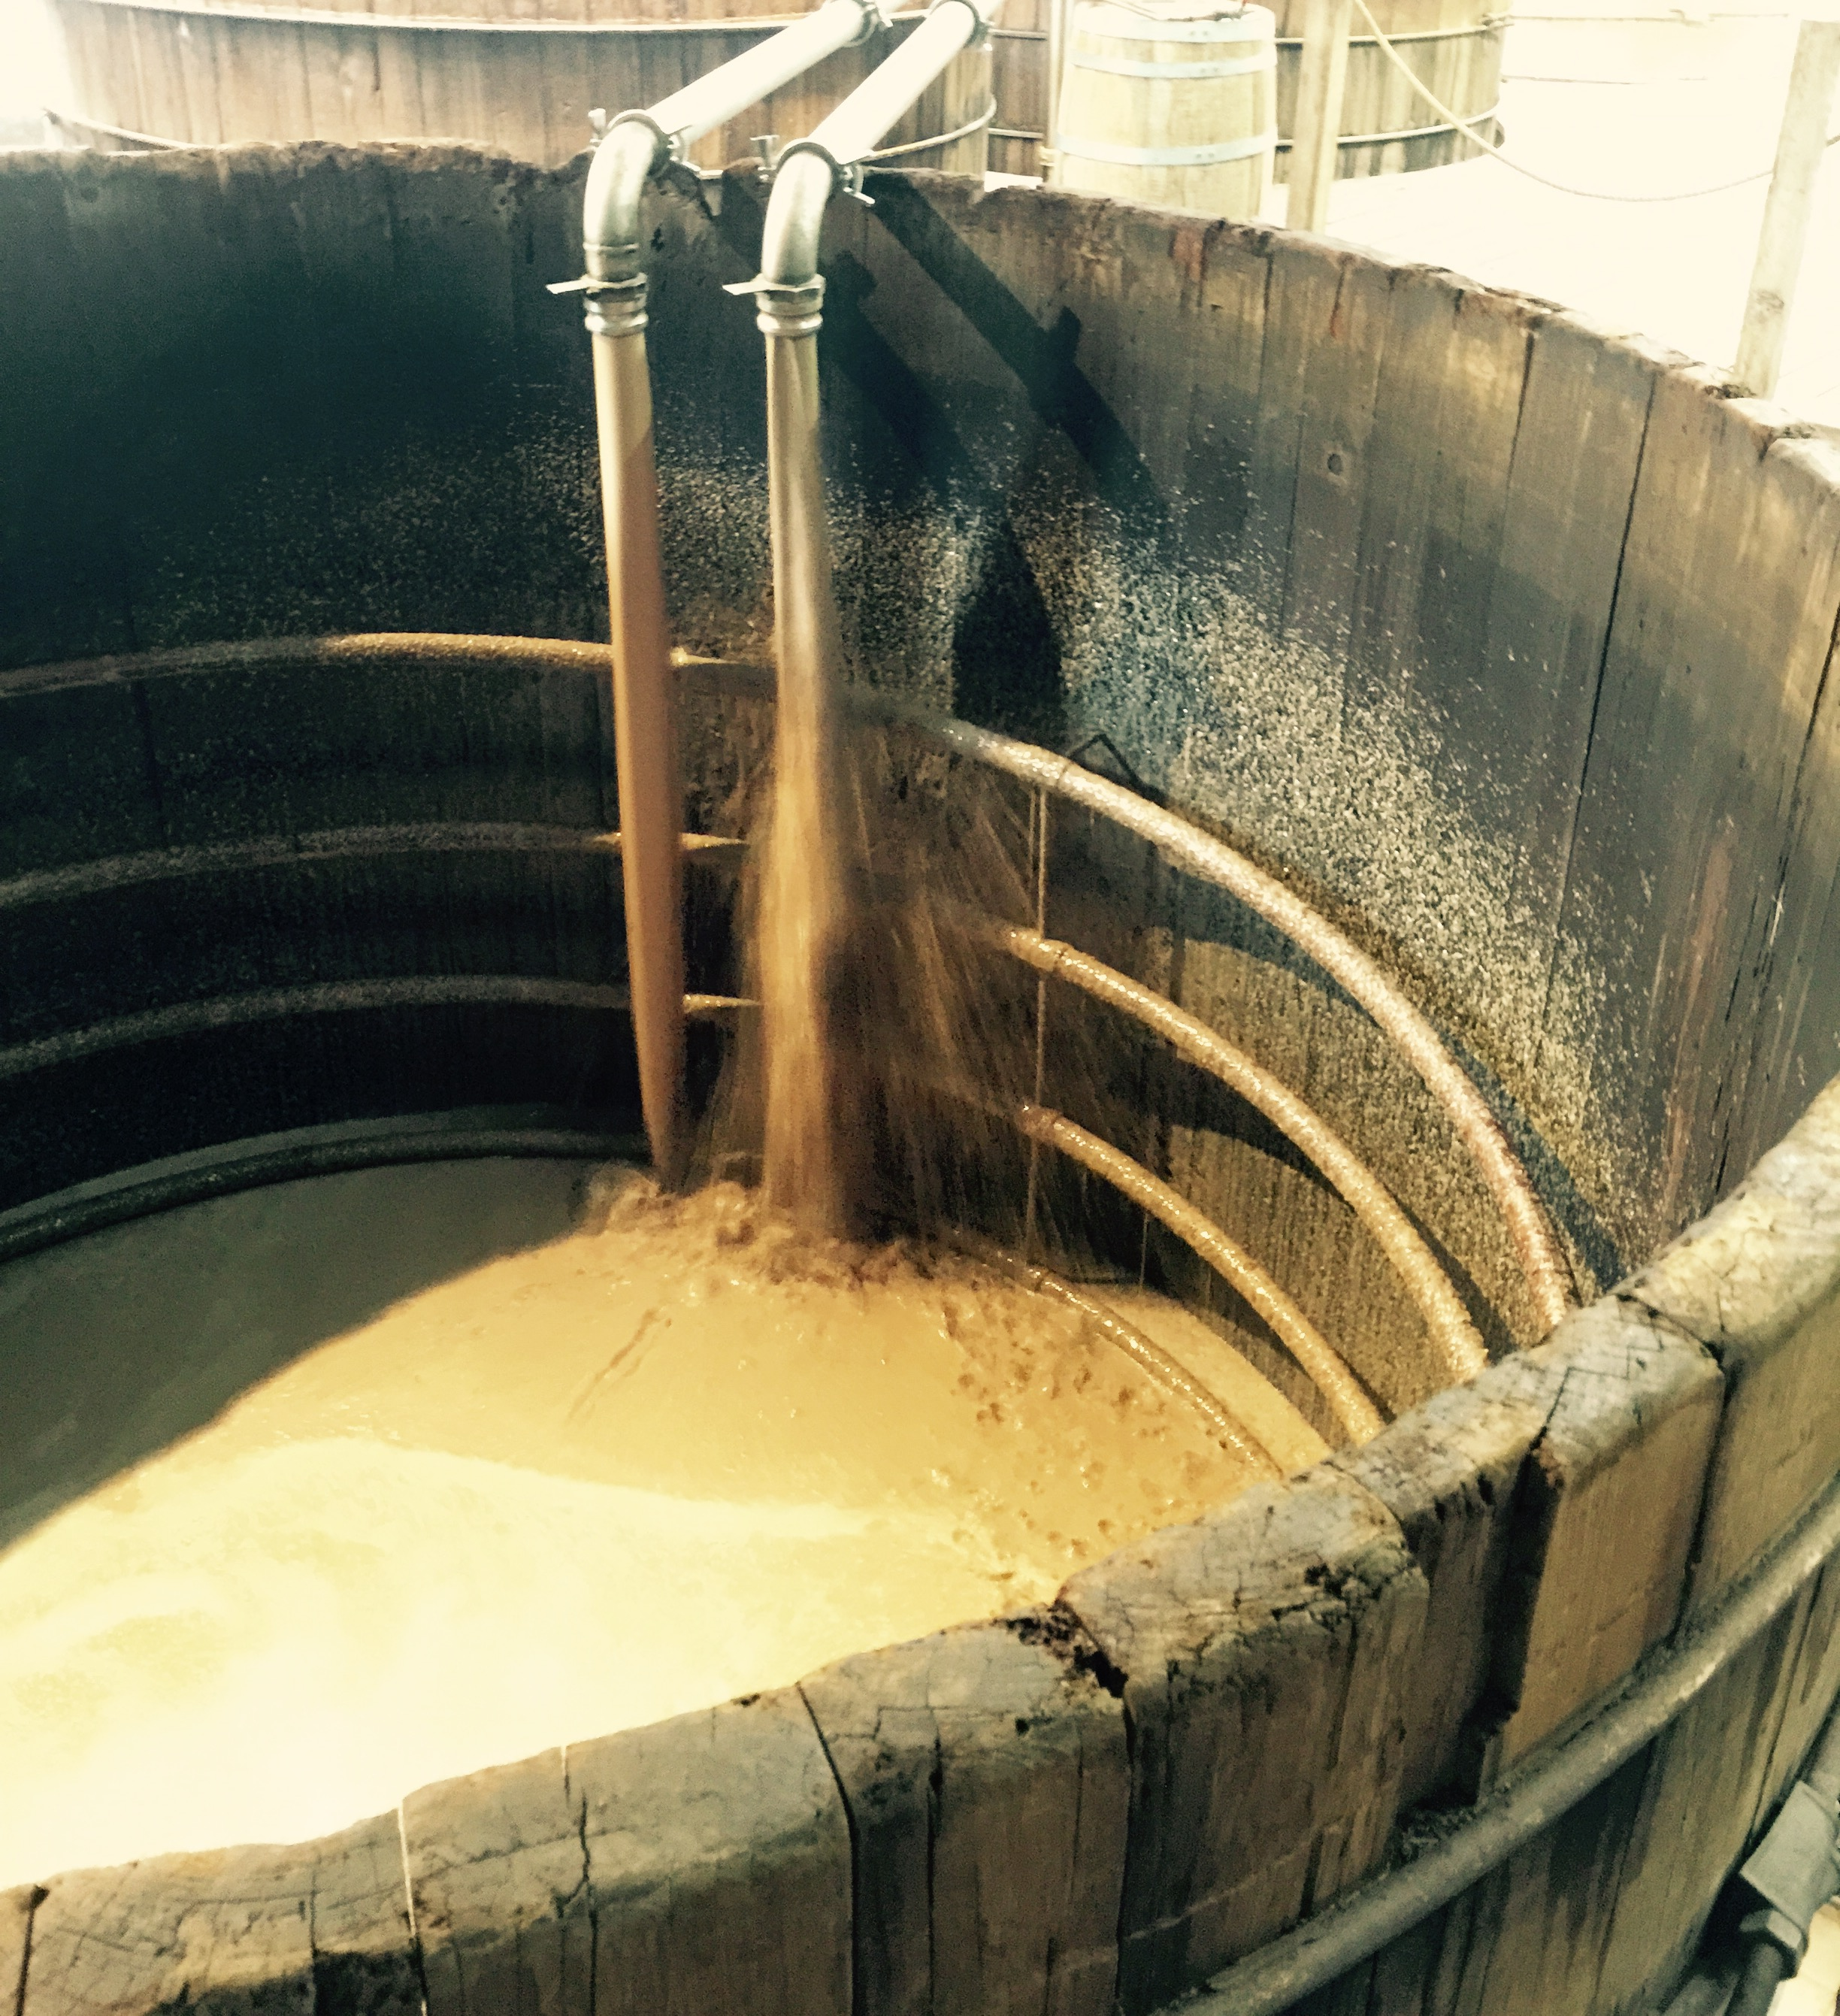 Filling the mash tubs at Woodford Reserve.